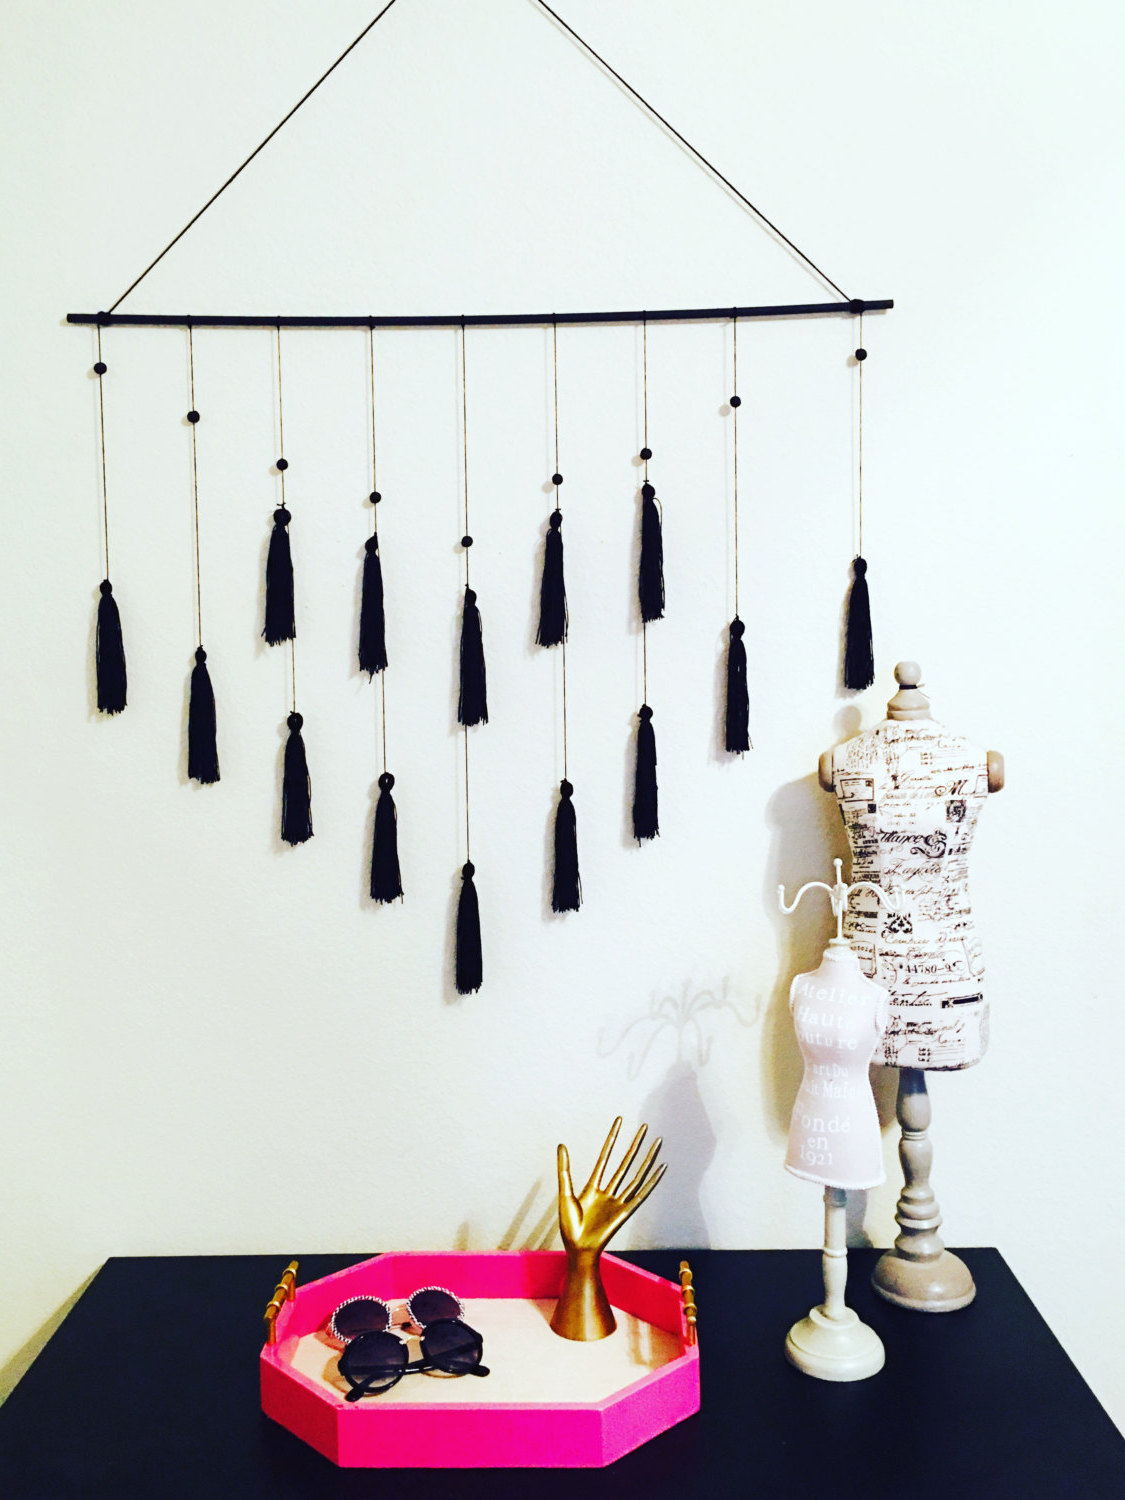 20 Creative Ways To Decorate Your Home With Unexpected ... on Creative Wall Decor  id=86730